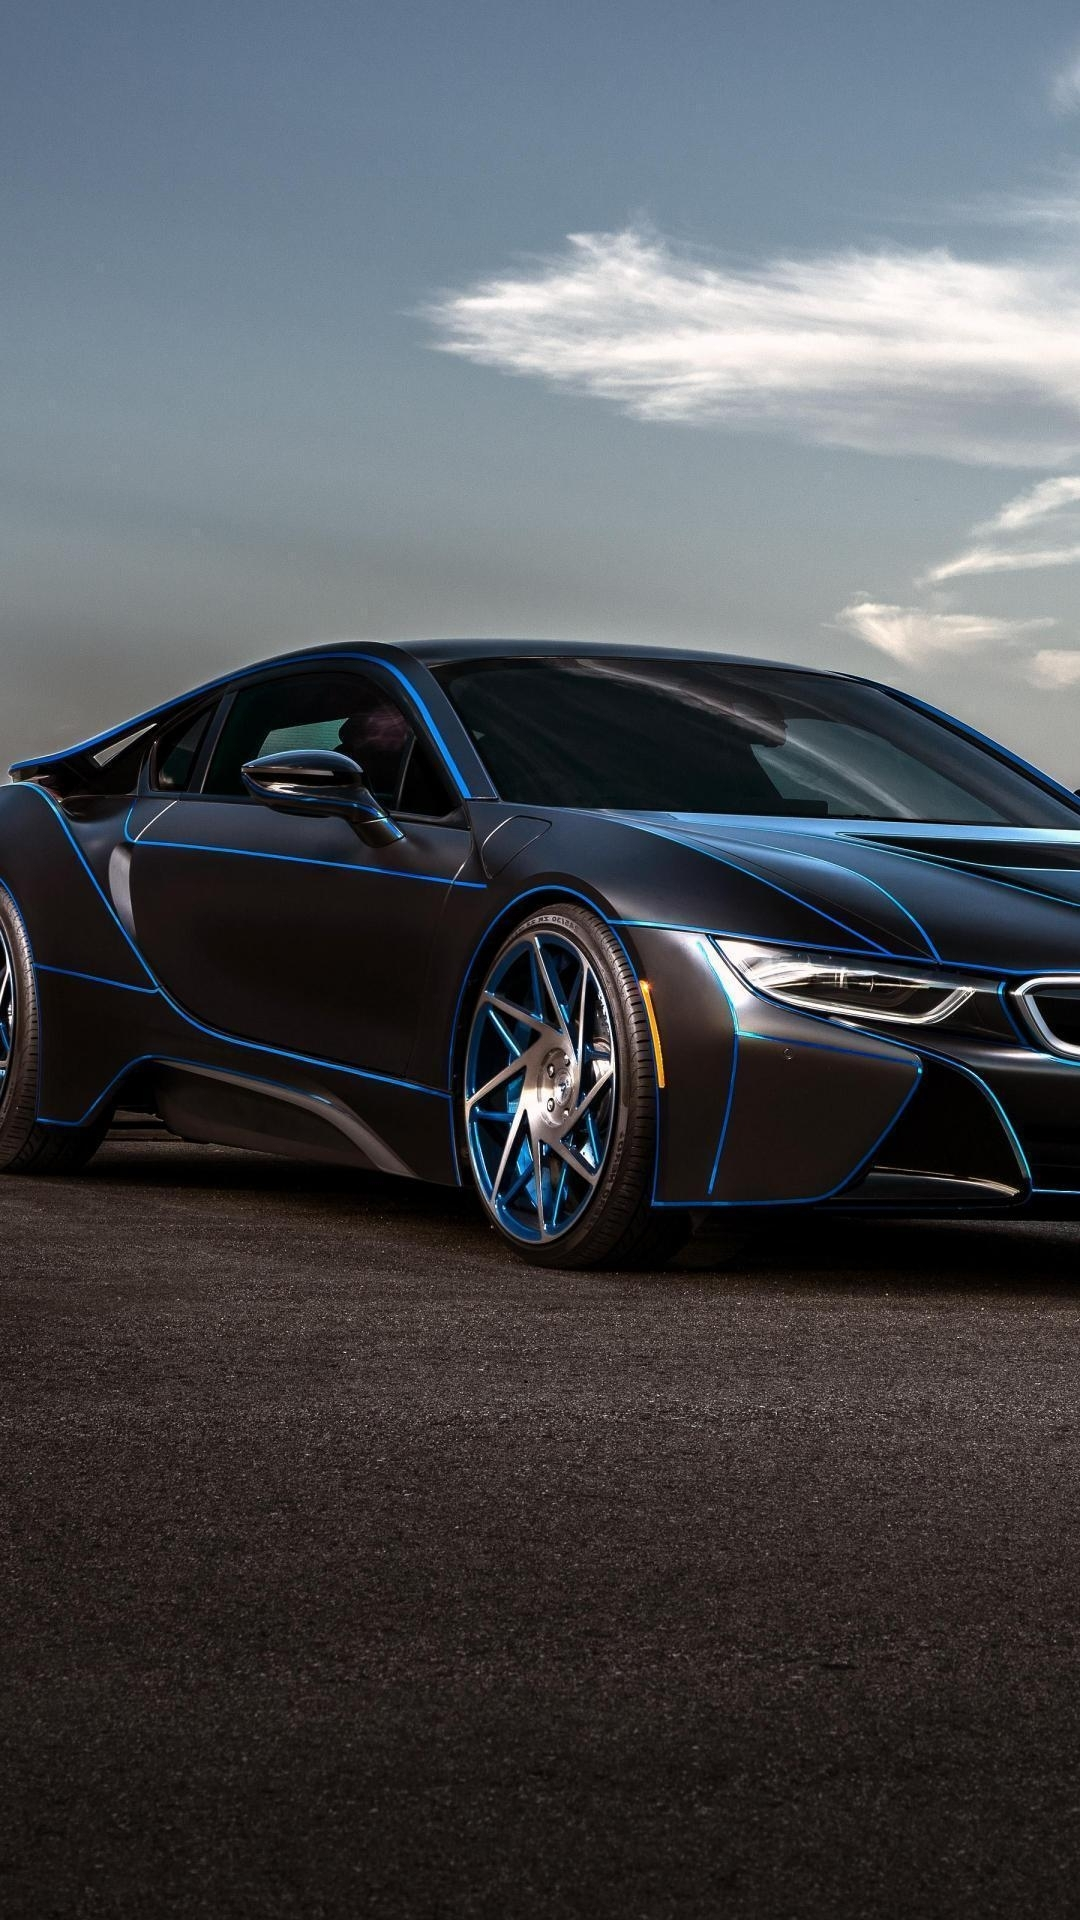 bmw i8 wallpapers - wallpaper cave